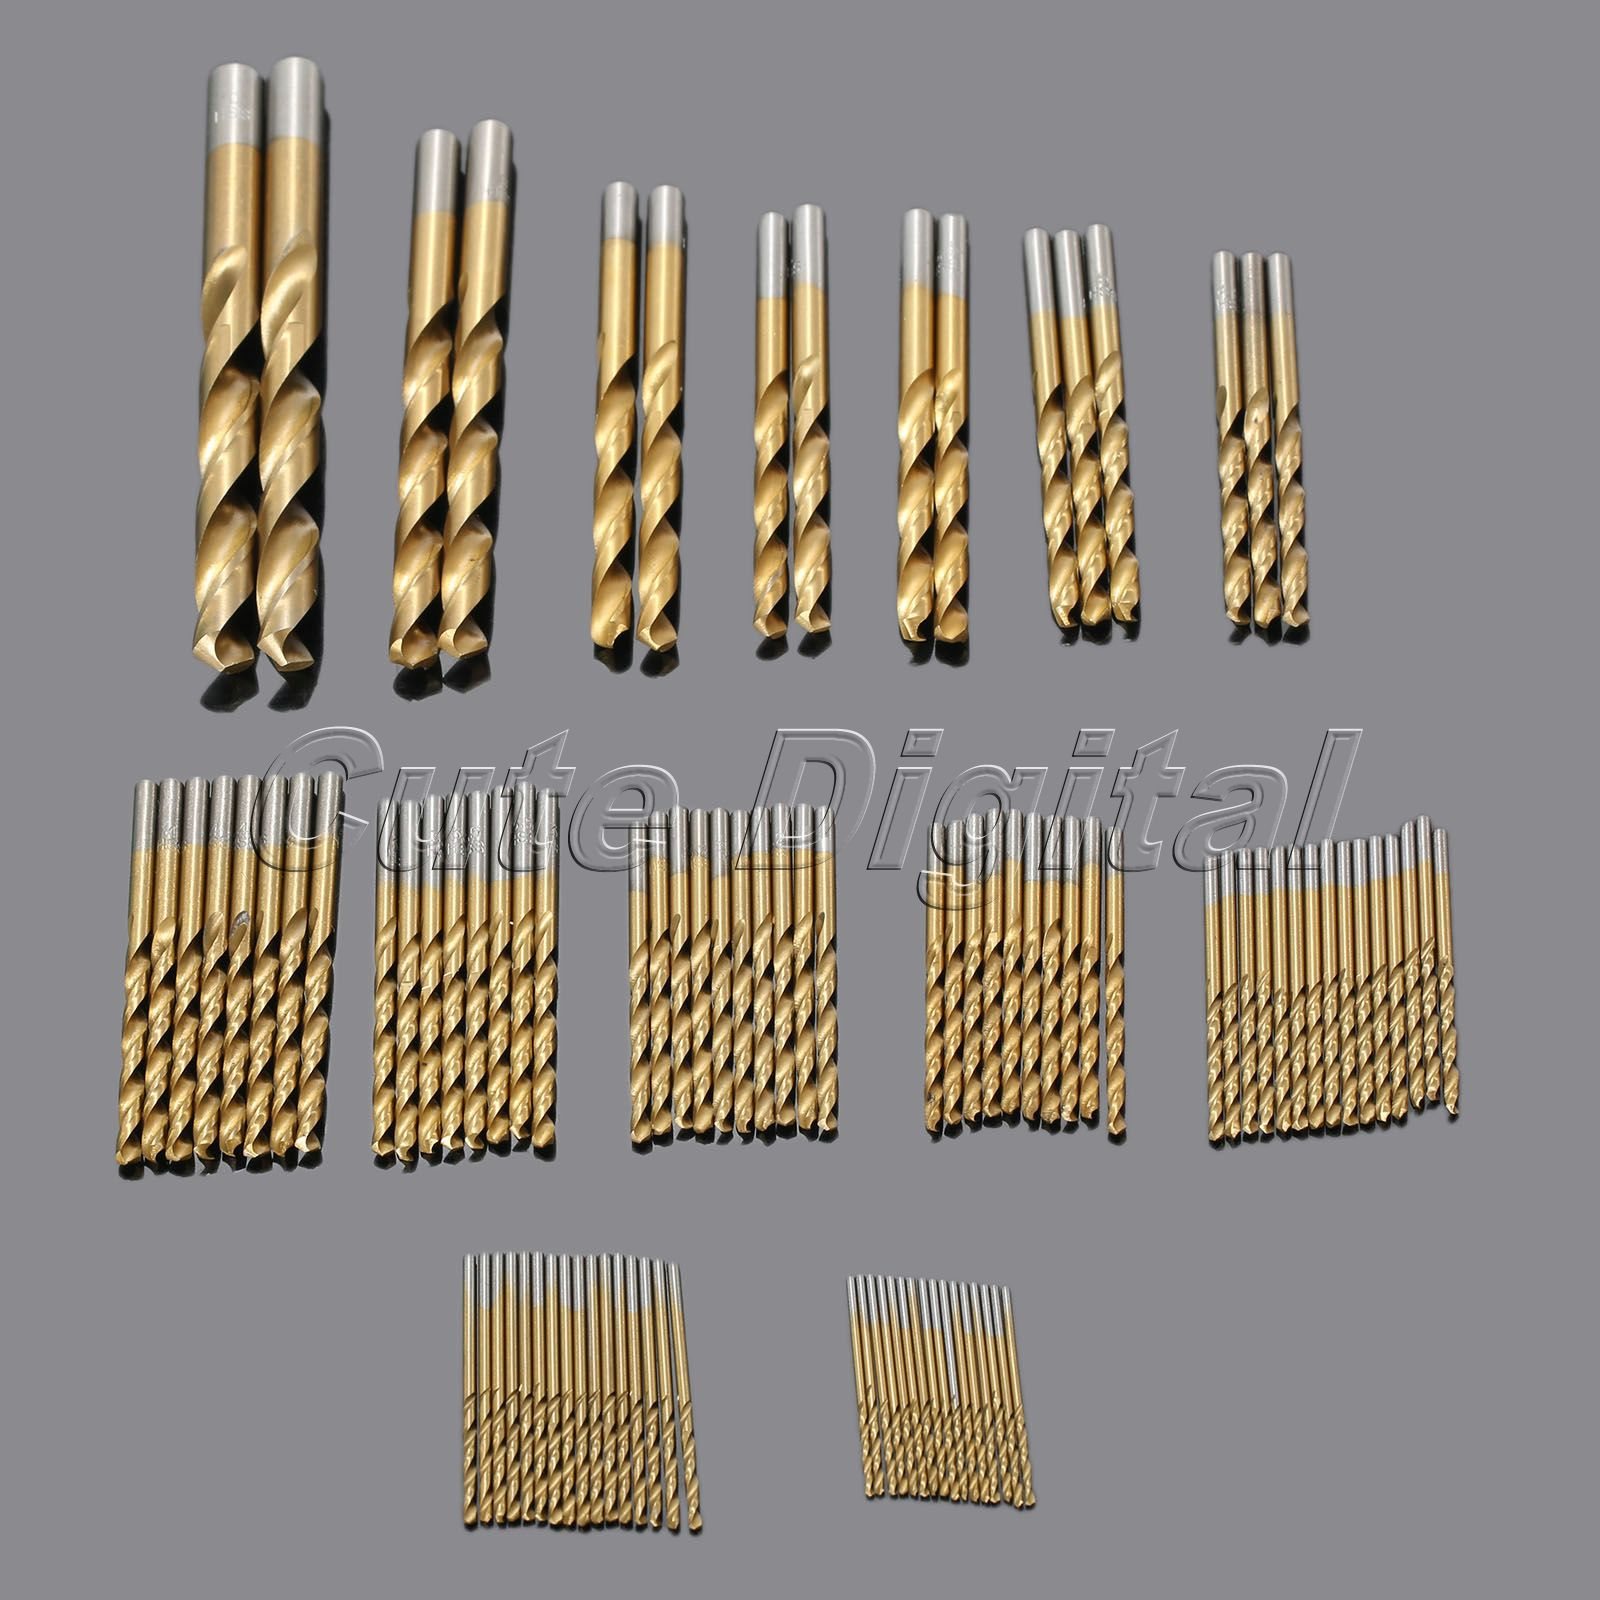 99pcs/set Titanium Coated HSS Twist Drill Bit Set High Speed Steel Drill Woodworking Power Tools Drill Accessories 1.5mm-10mm 19pcs hss titanium twist drill bit set high speed steel straight round shank 1 10mm durable power tools for metal drilling